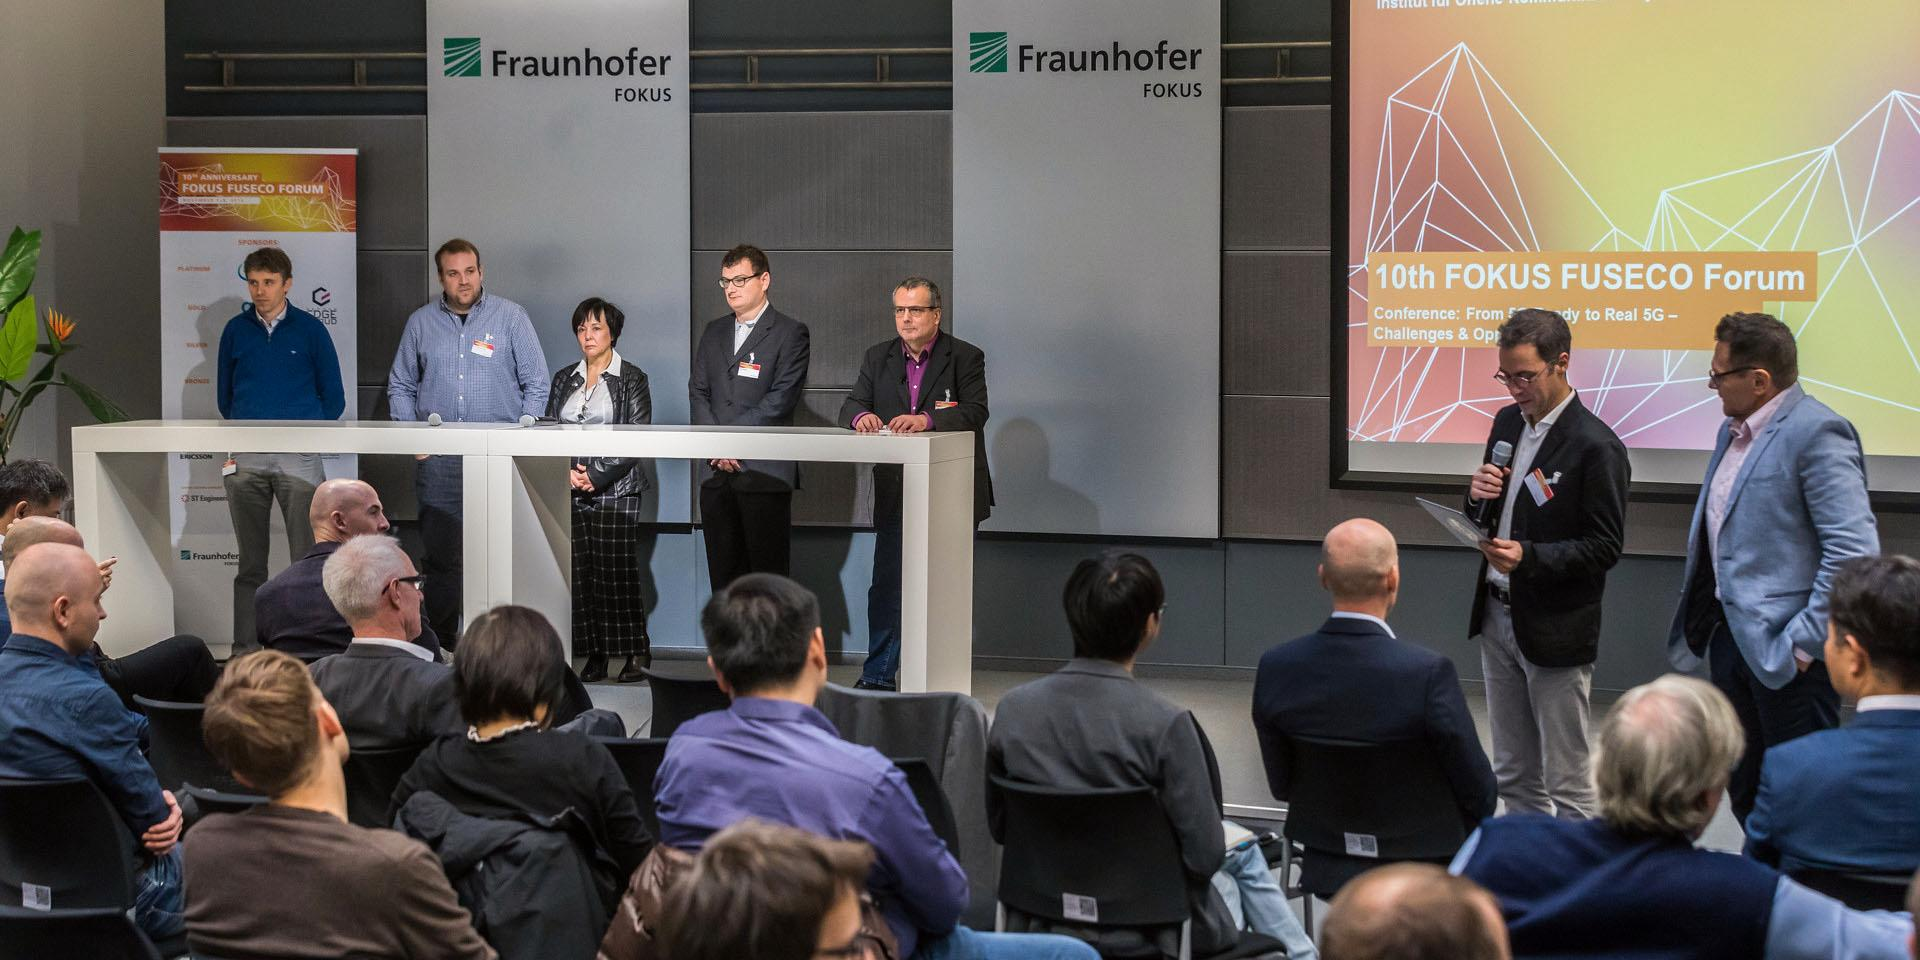 FOKUS Fuseco Forum 2019 Impression 4